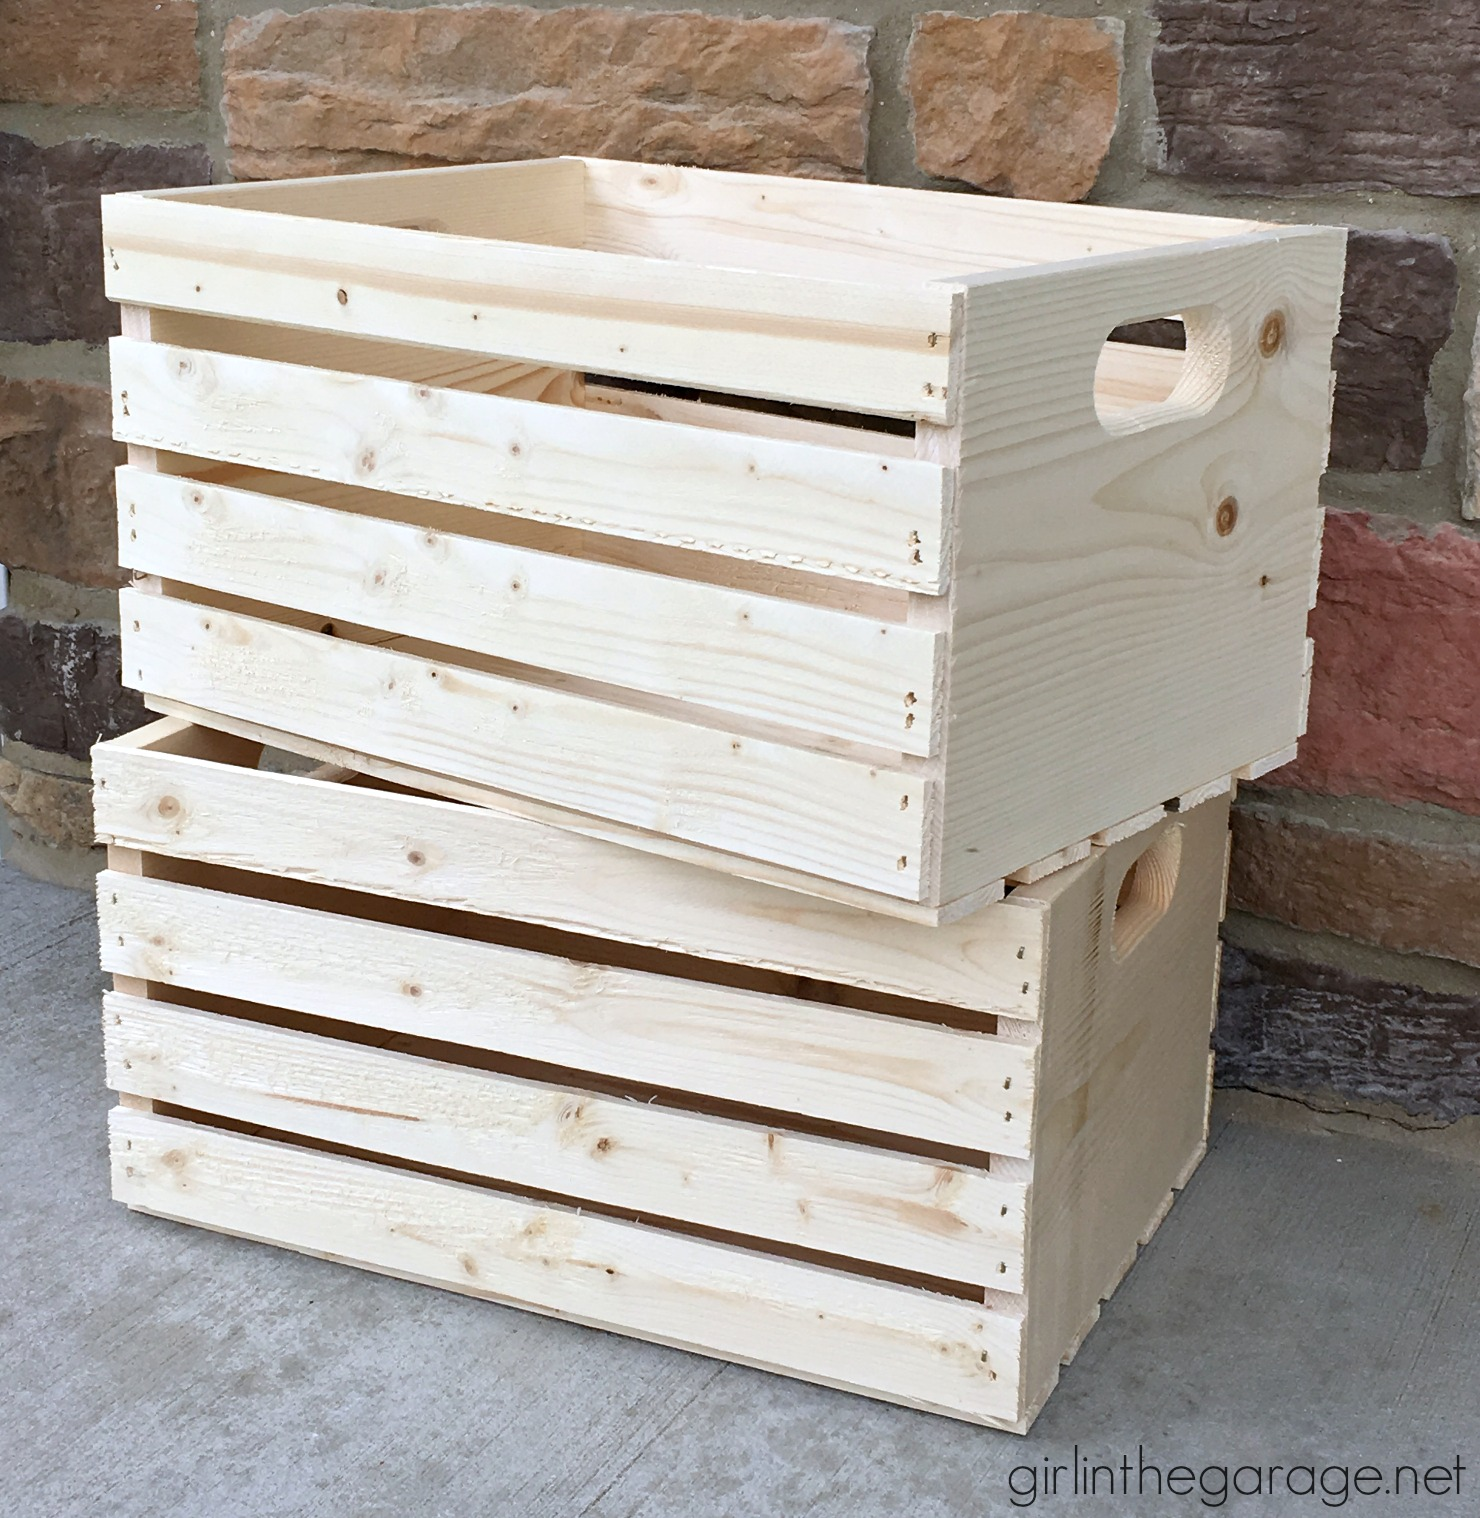 Decoupage Crates, Framed Cork Boards, and Drawer Shelves | Girl in ...